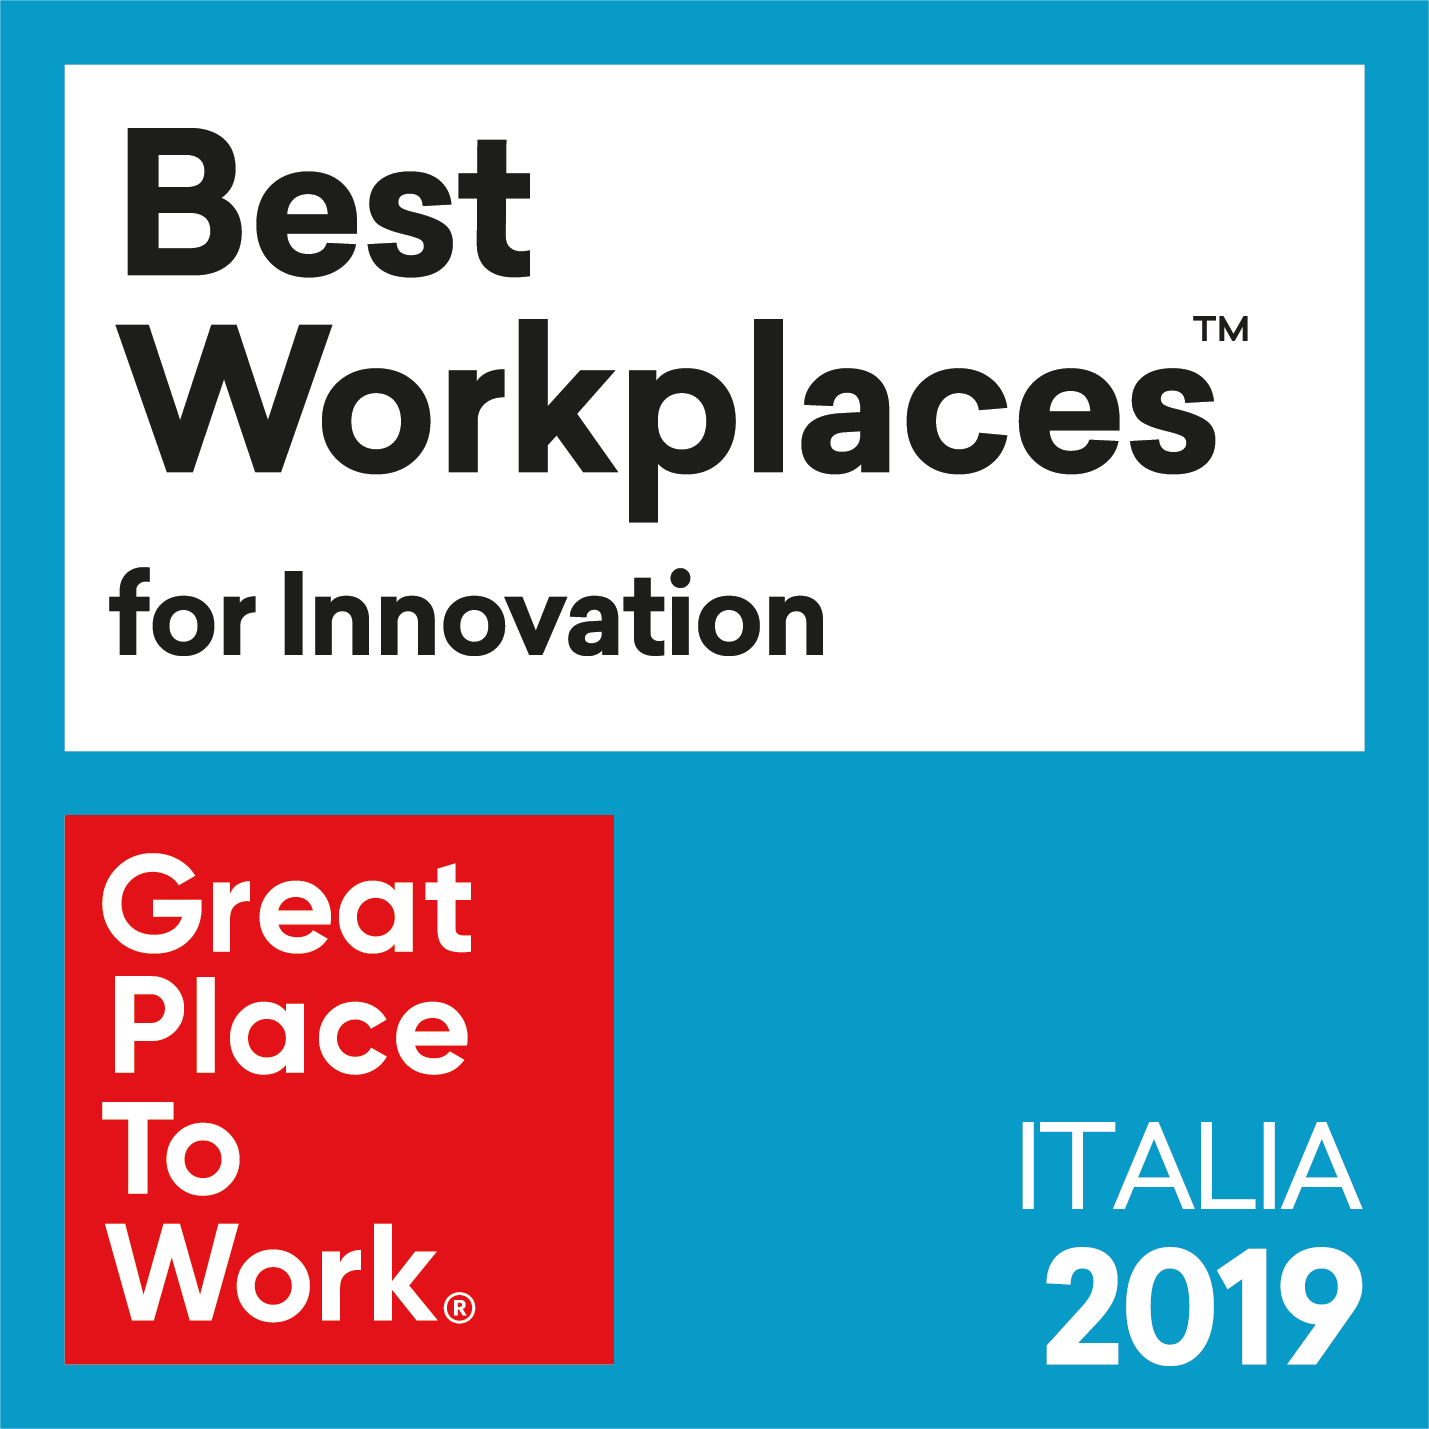 Best Workplaces for innovation 2019